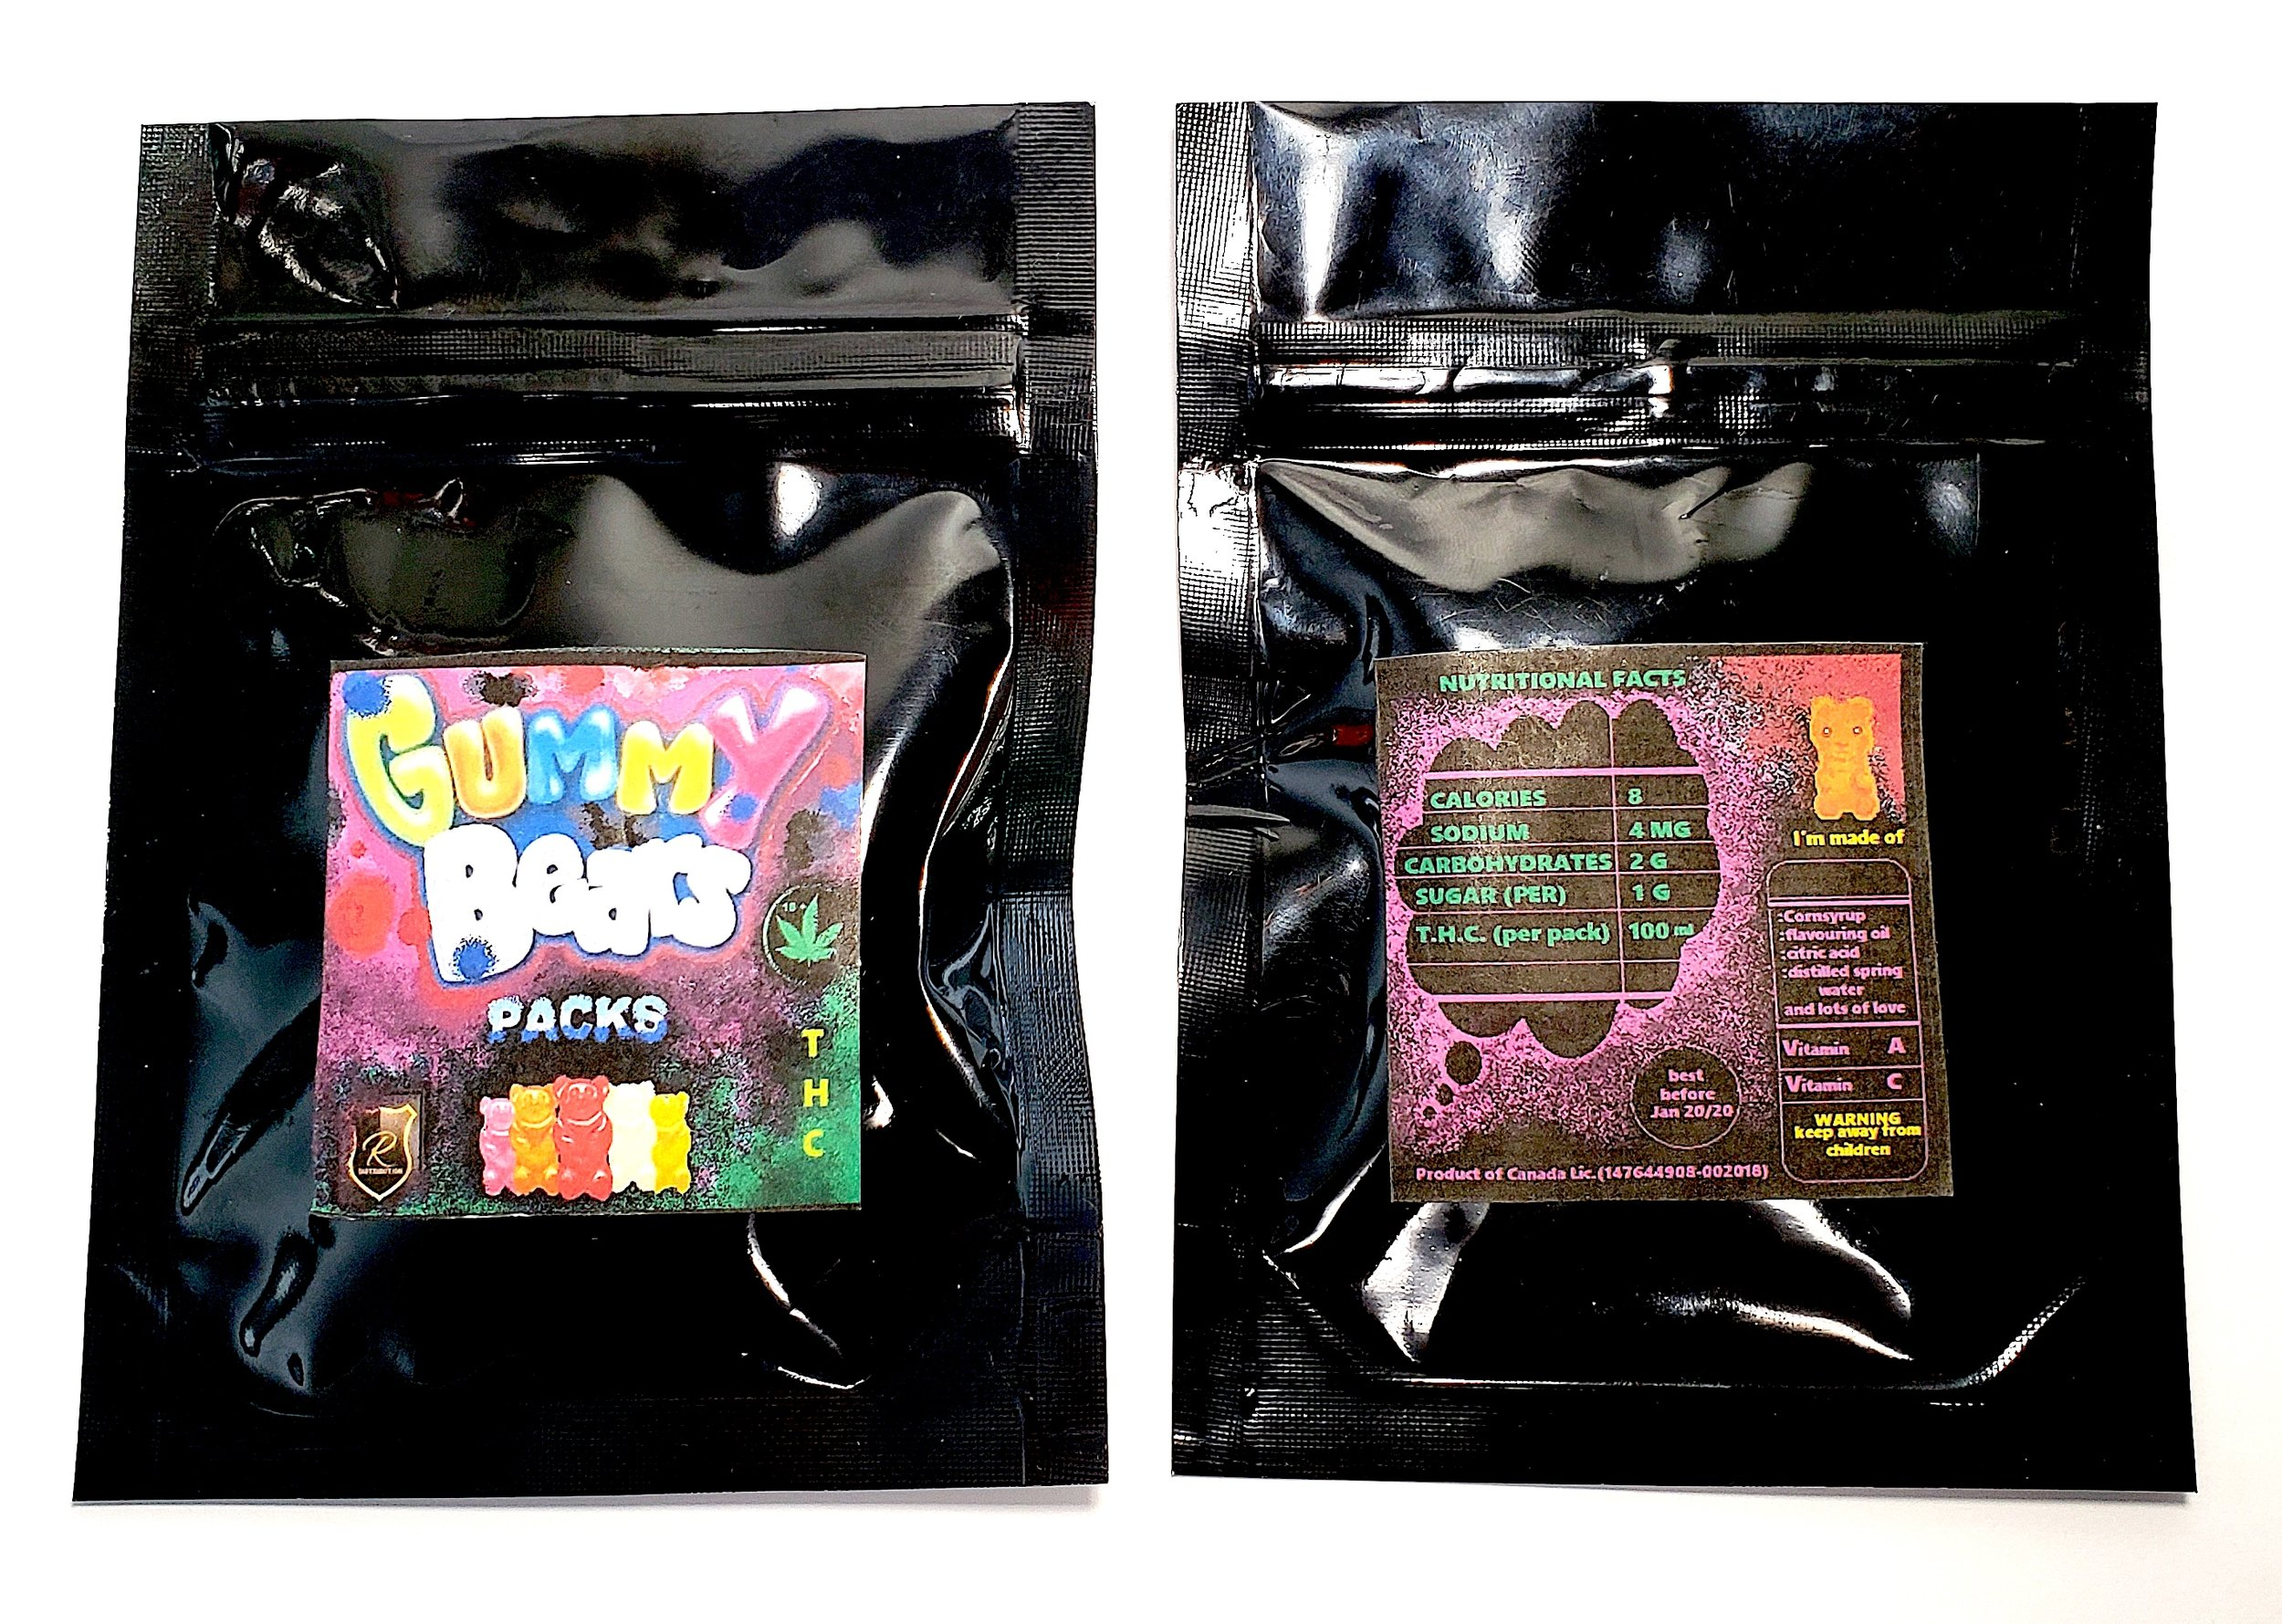 Gummy Bears - 100mg THC - $15 eachCrafted and packaged with care and compassion. Perfect for medicinal and recreational users looking for convenient and discreet doses. At 100mg/10 pieces per pack, consumers can enjoy more of a good thing while managing their day to day needs.